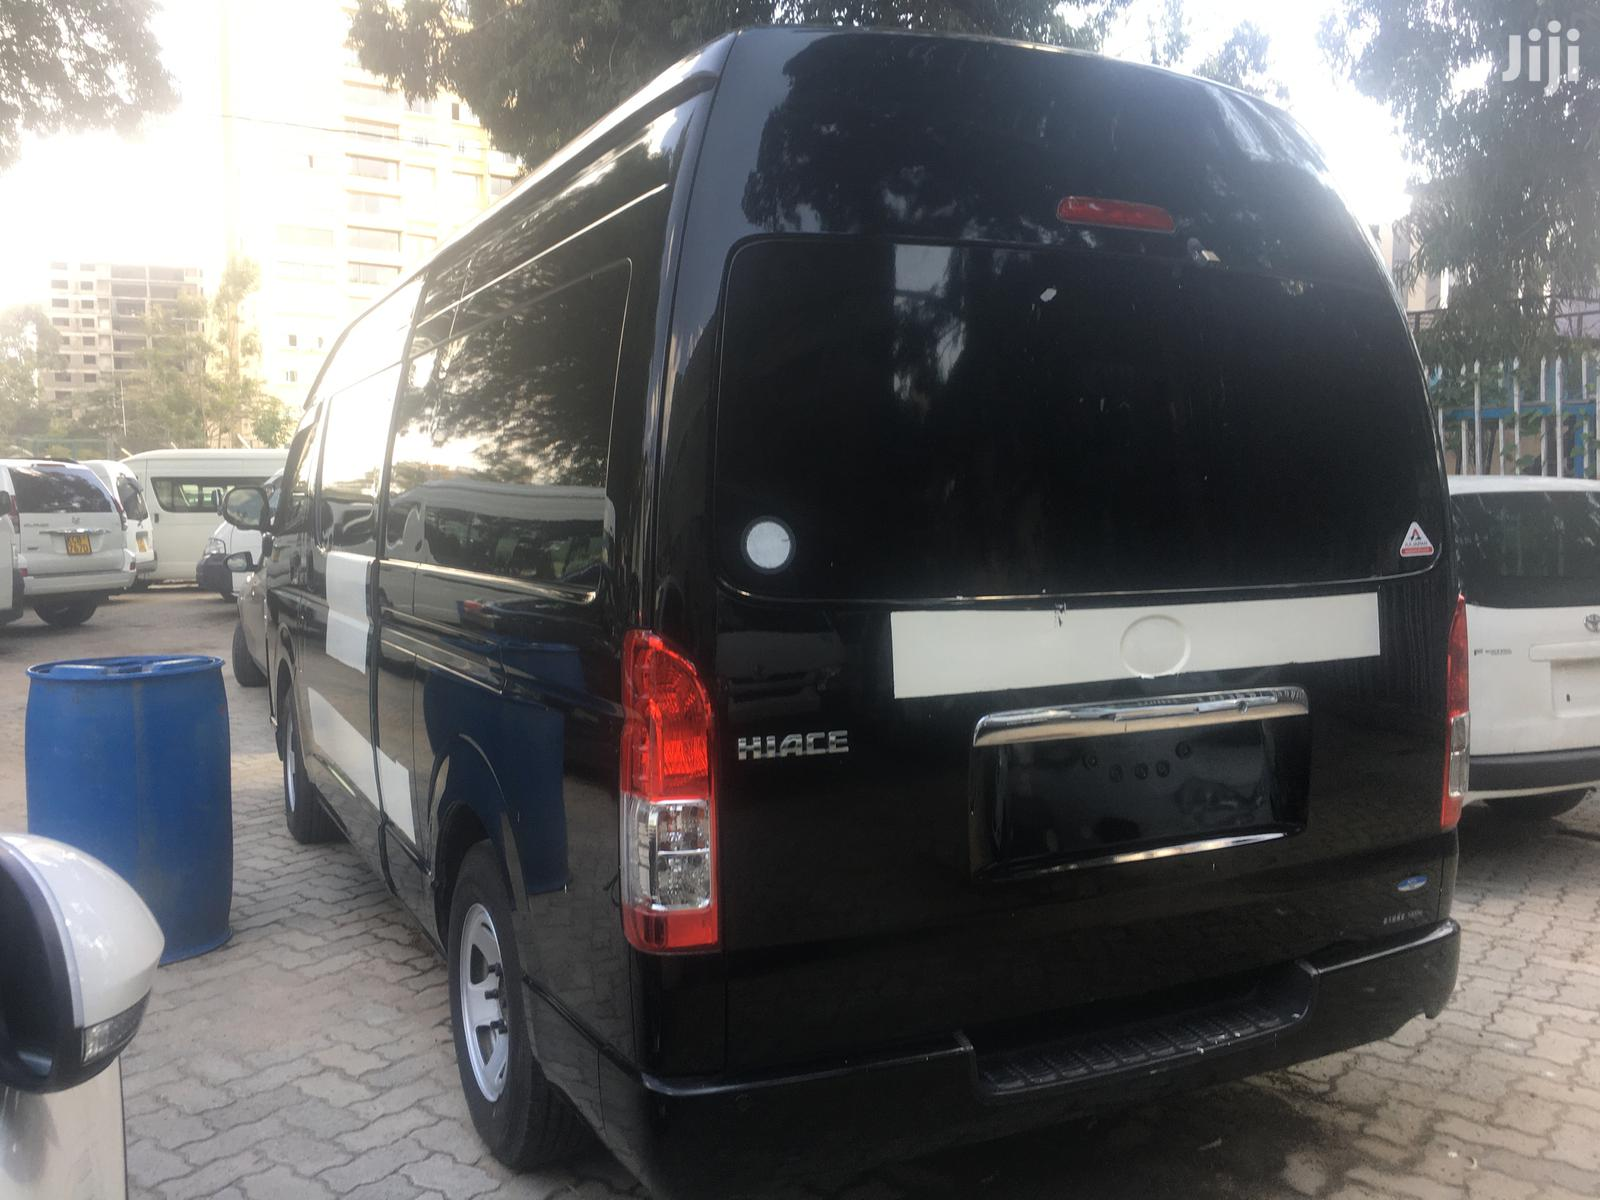 2014 Toyota Hiace 9l Diesel Auto With A Removable Crane | Buses & Microbuses for sale in Kilimani, Nairobi, Kenya